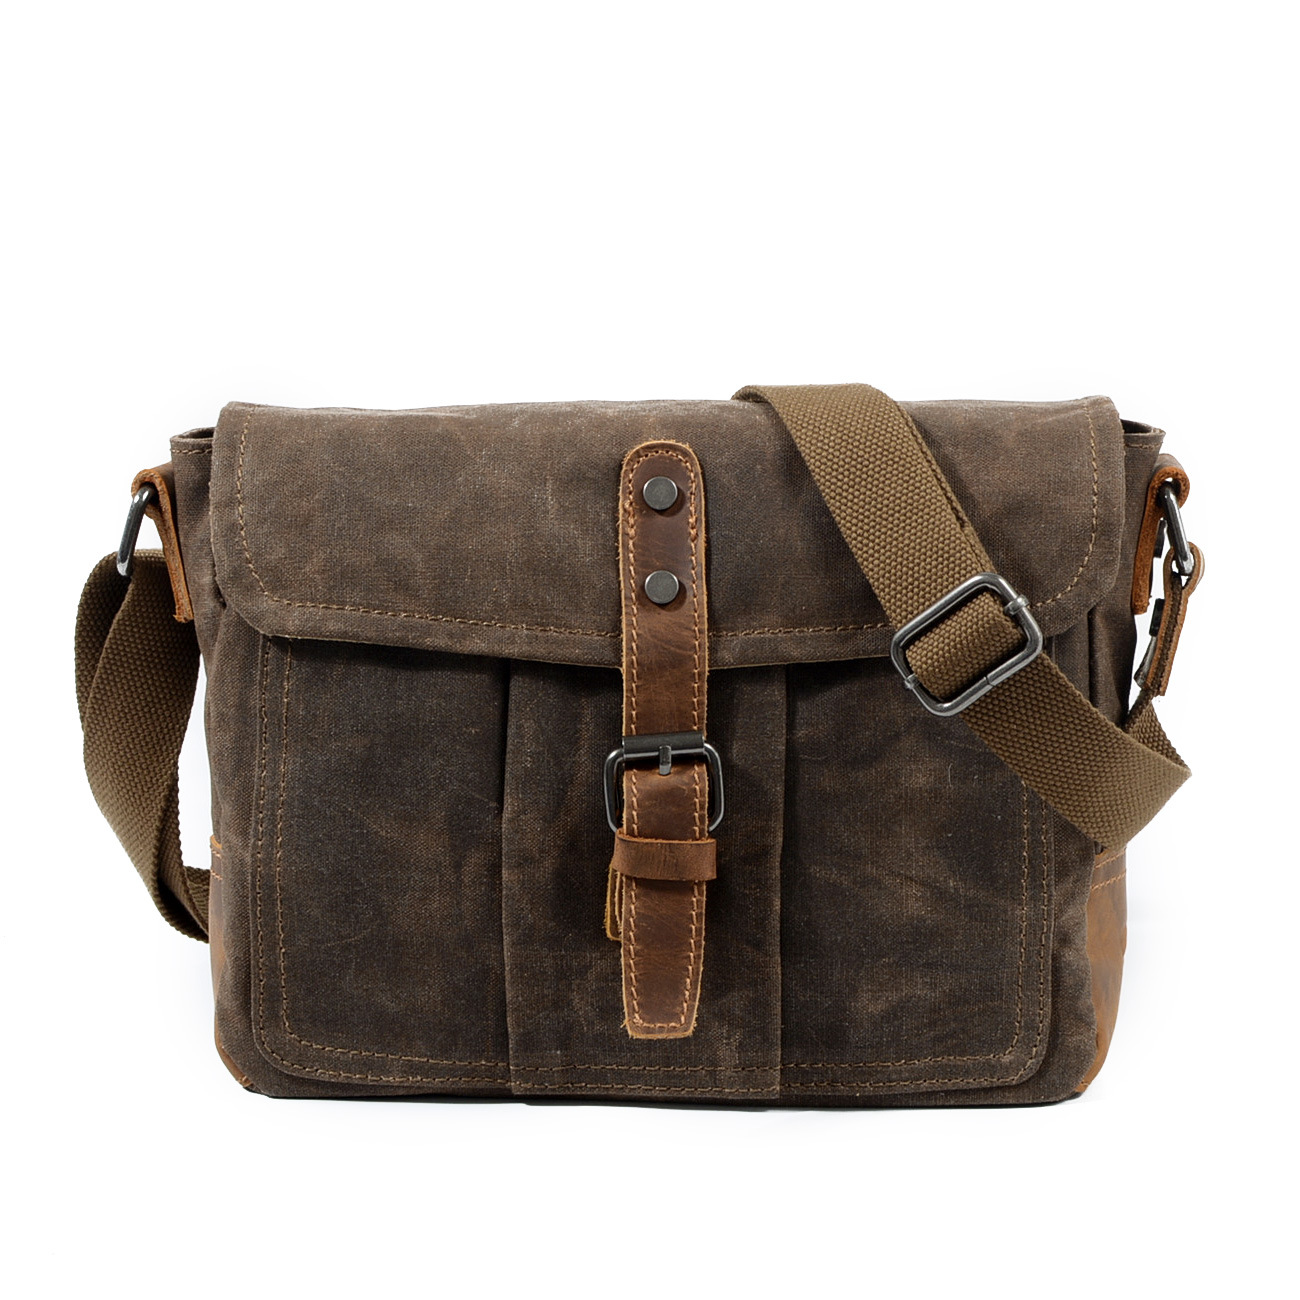 Us 31 43 40 Off Mco 2018 Vintage Waxed Canvas Messenger Bag For Men Military Male Travel Crossbody Waterproof Basic Business Shoulder Bags In